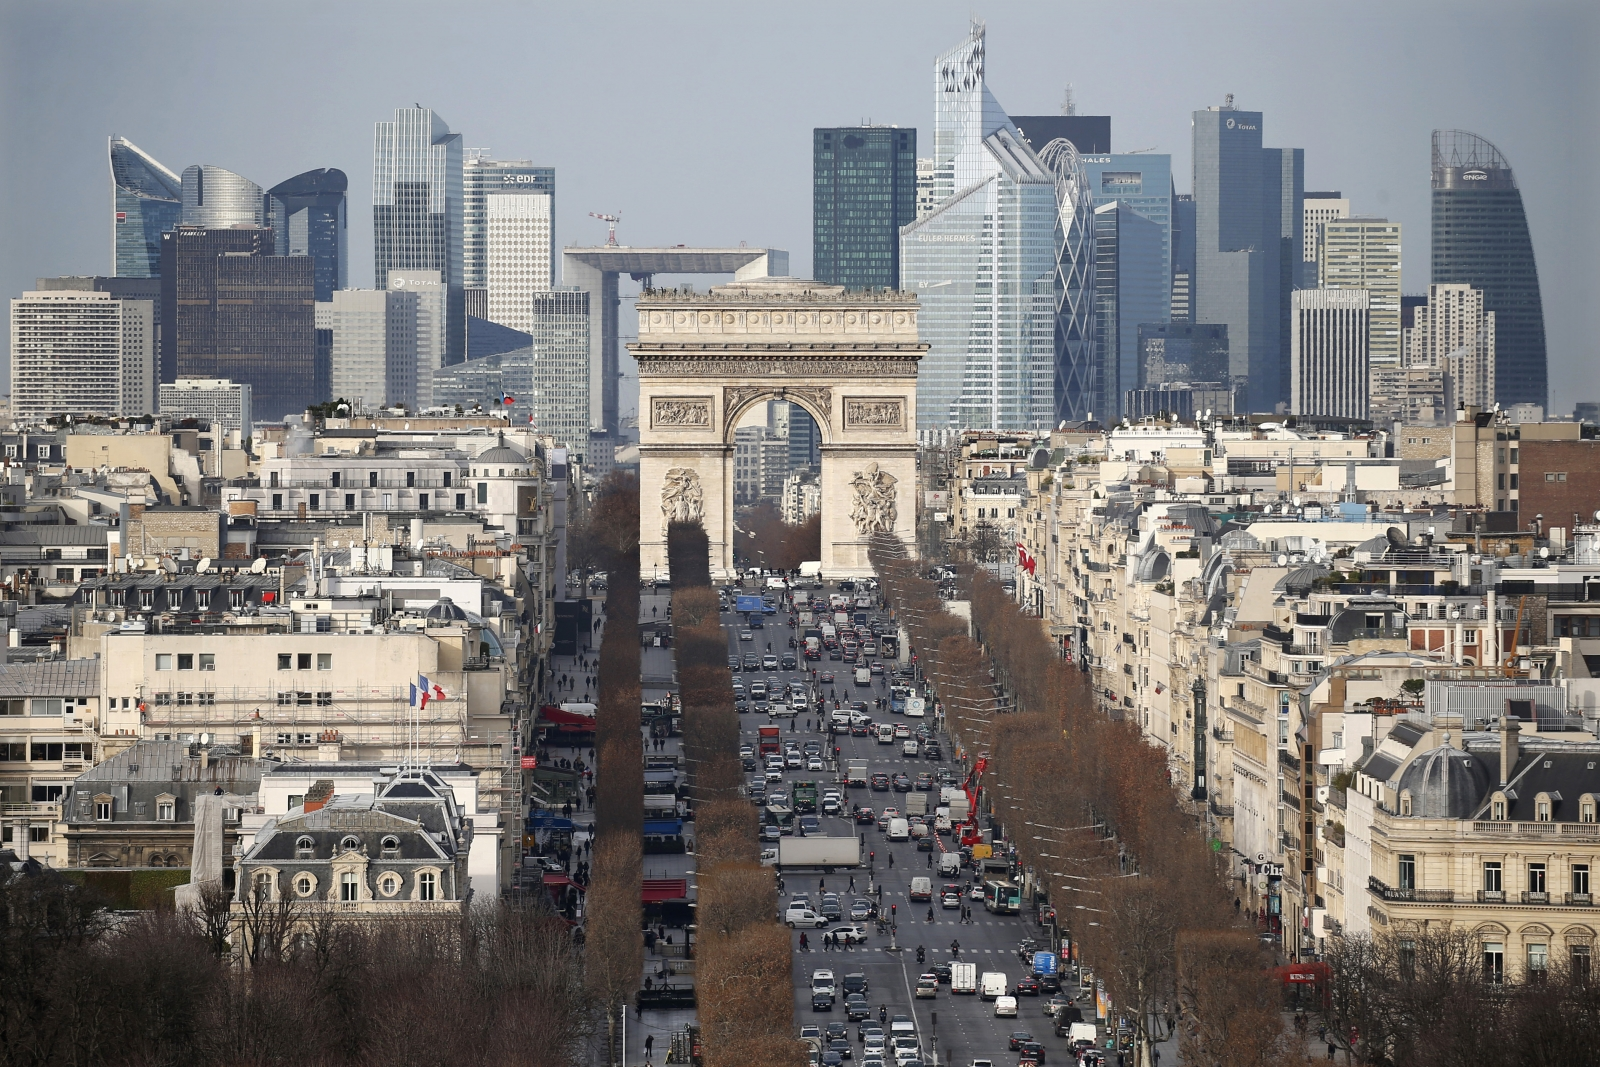 Champs Elysees Avenue